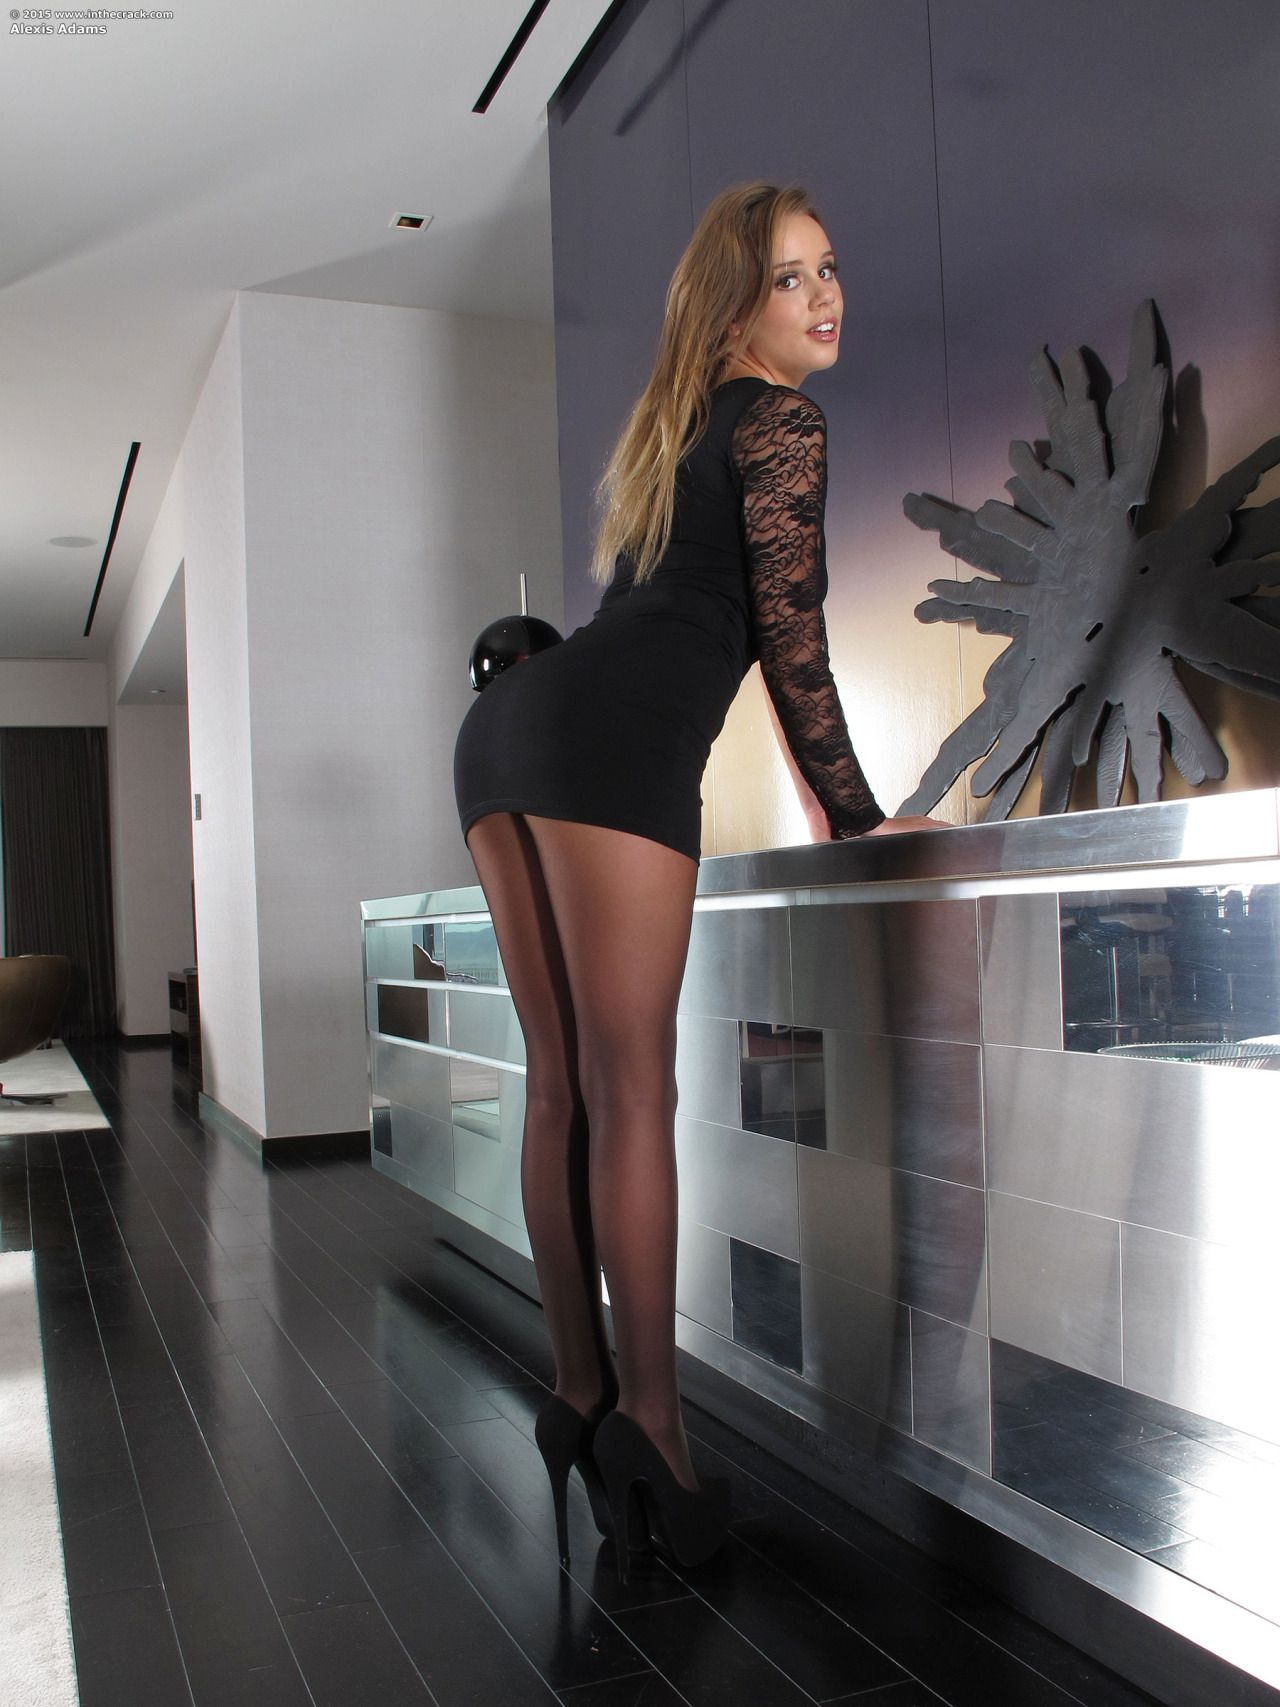 Adults pantyhose models videos